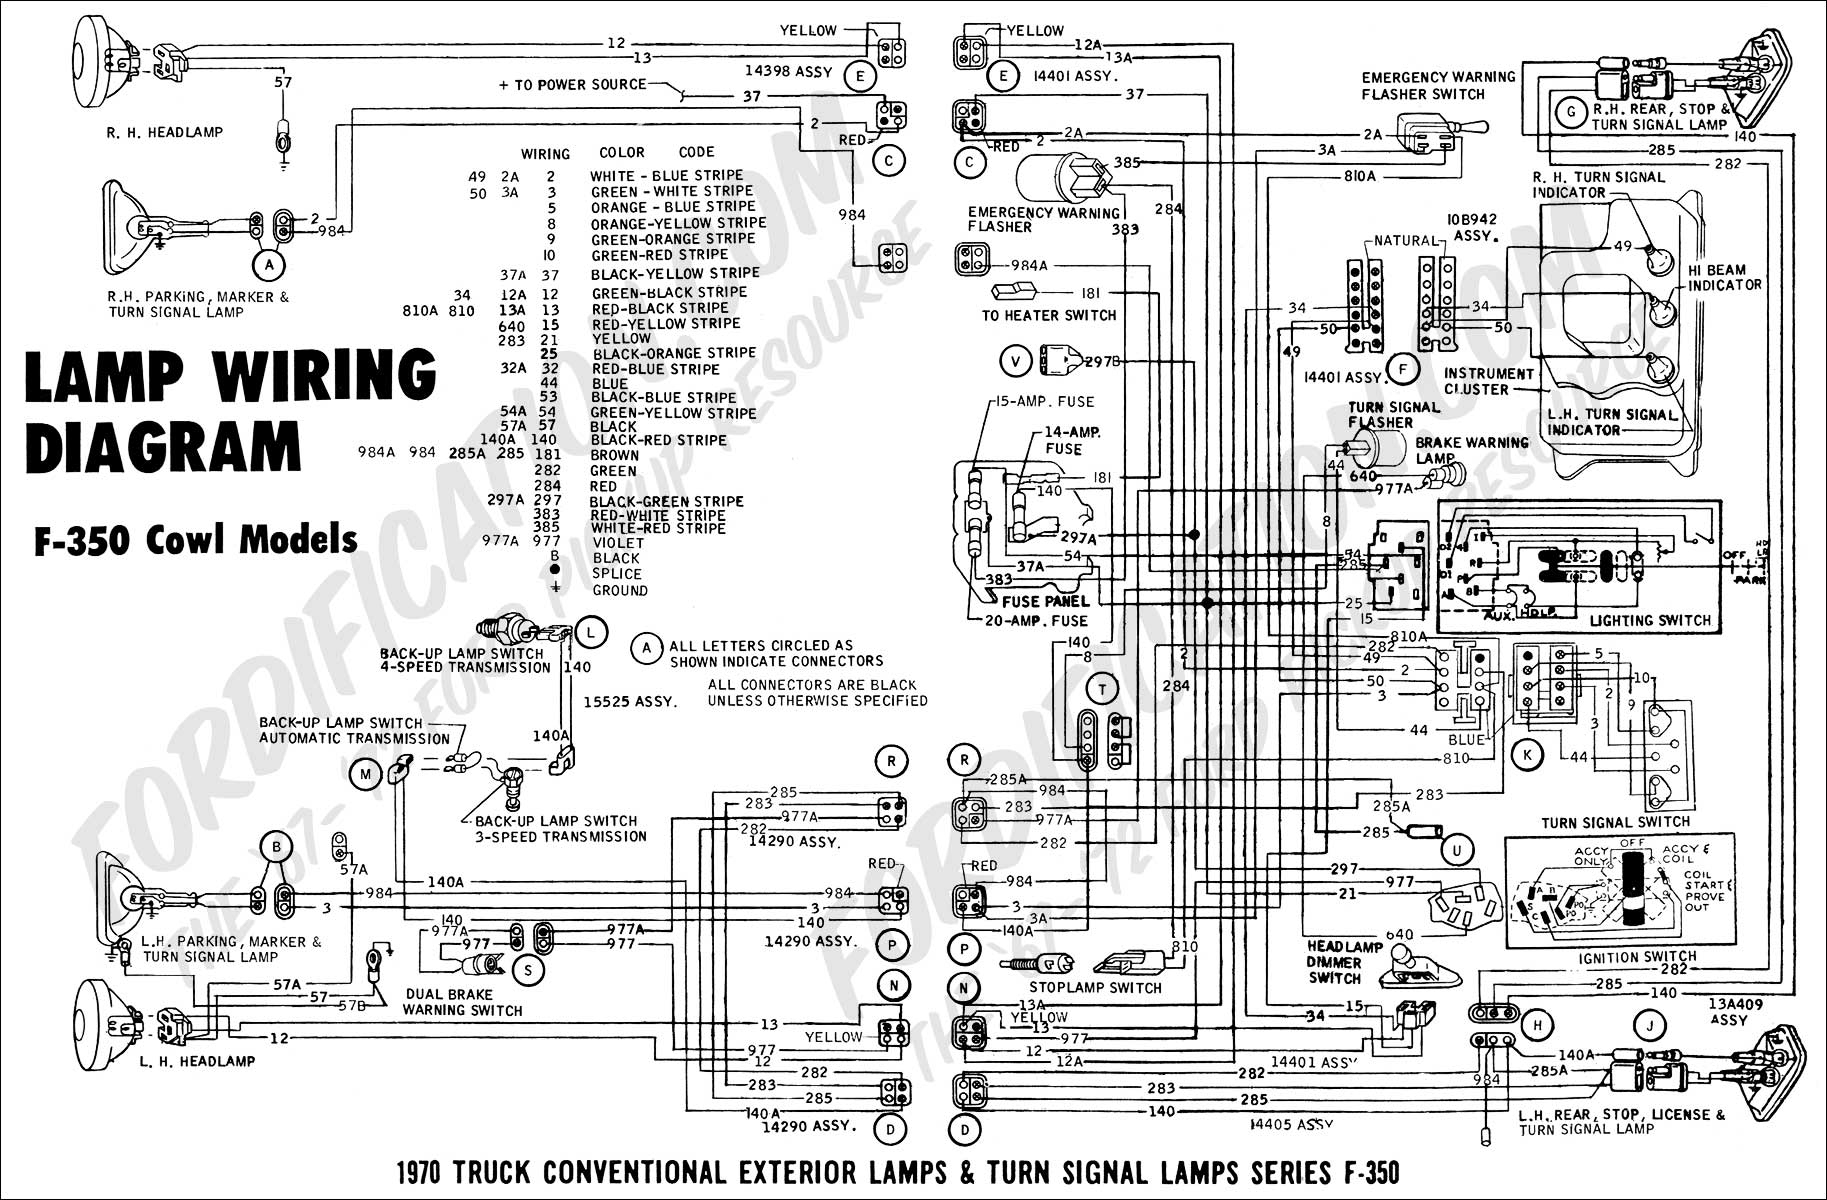 2002 Crown Victoria Wiring Diagram | Manual E-Books - 1999 Ford F250 Trailer Wiring Diagram